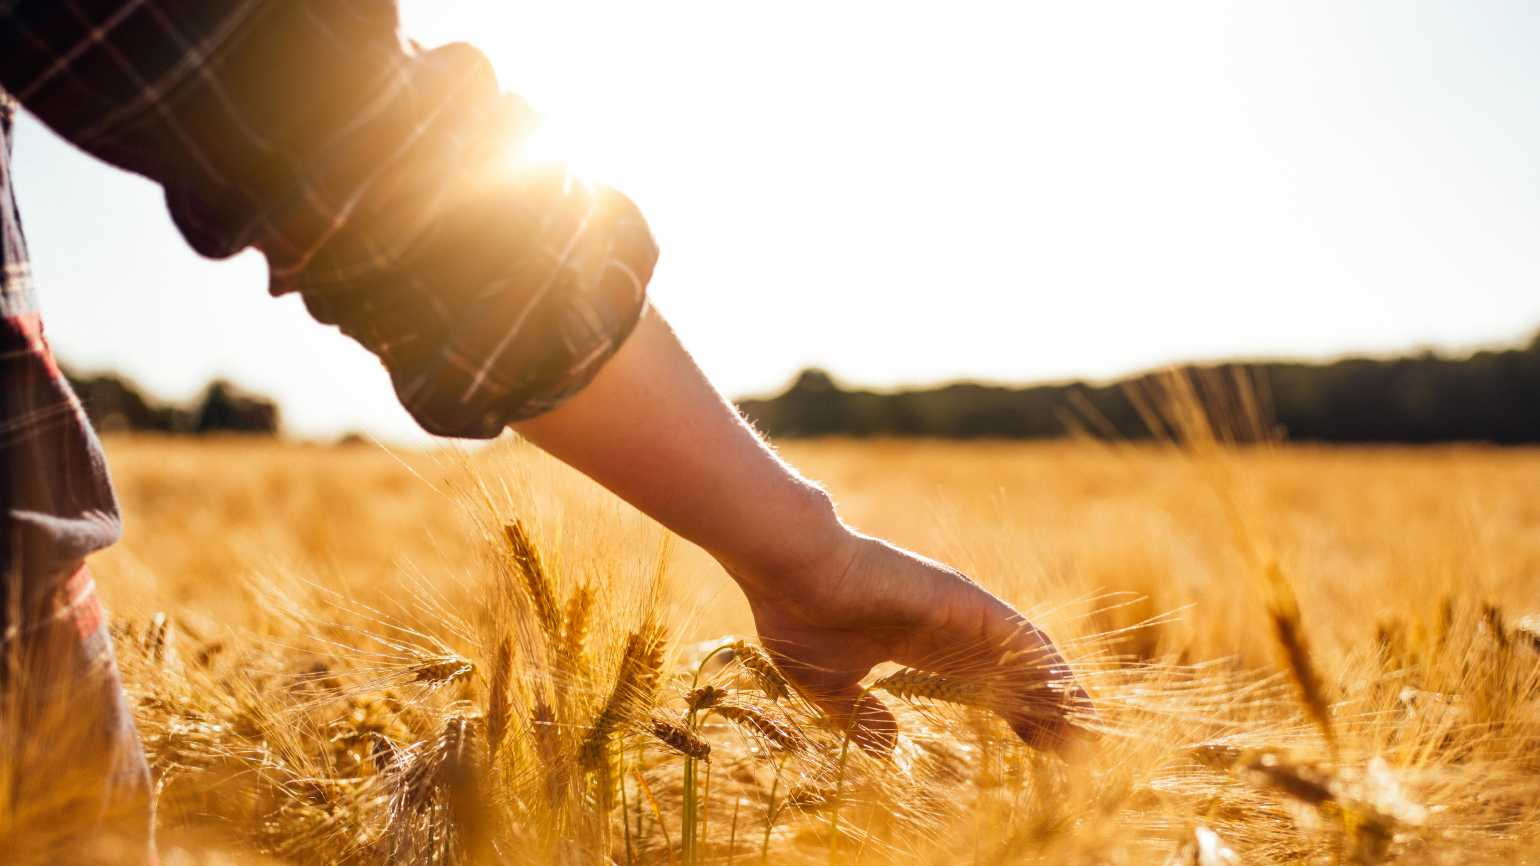 a hand touches blades of golden wheat as the sunlight beams down. Overcoming fear as a caregiver